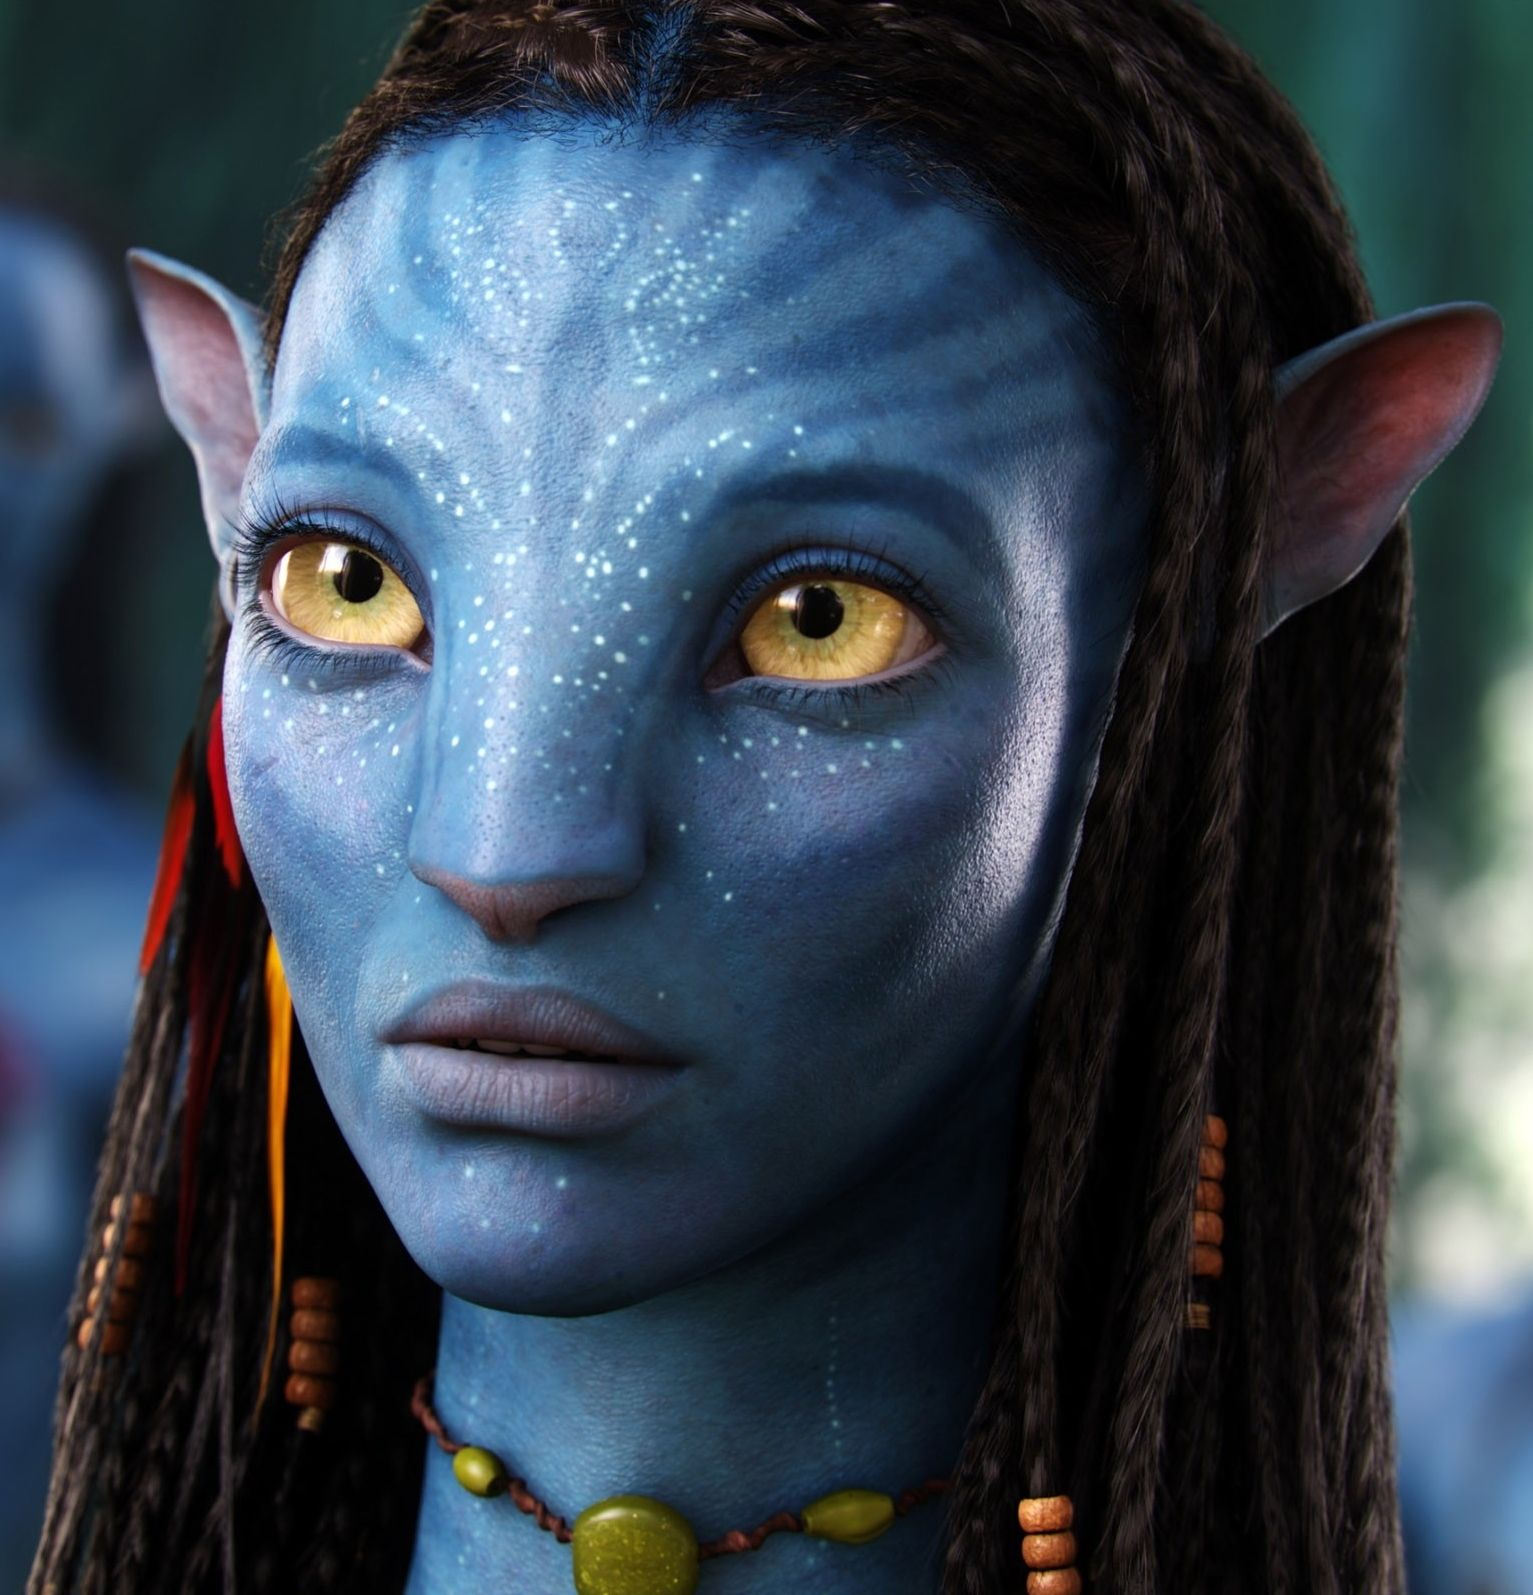 Avatar 2 Full Movie Hd: Neytiri(Avatar) Played By Zoe Saldana